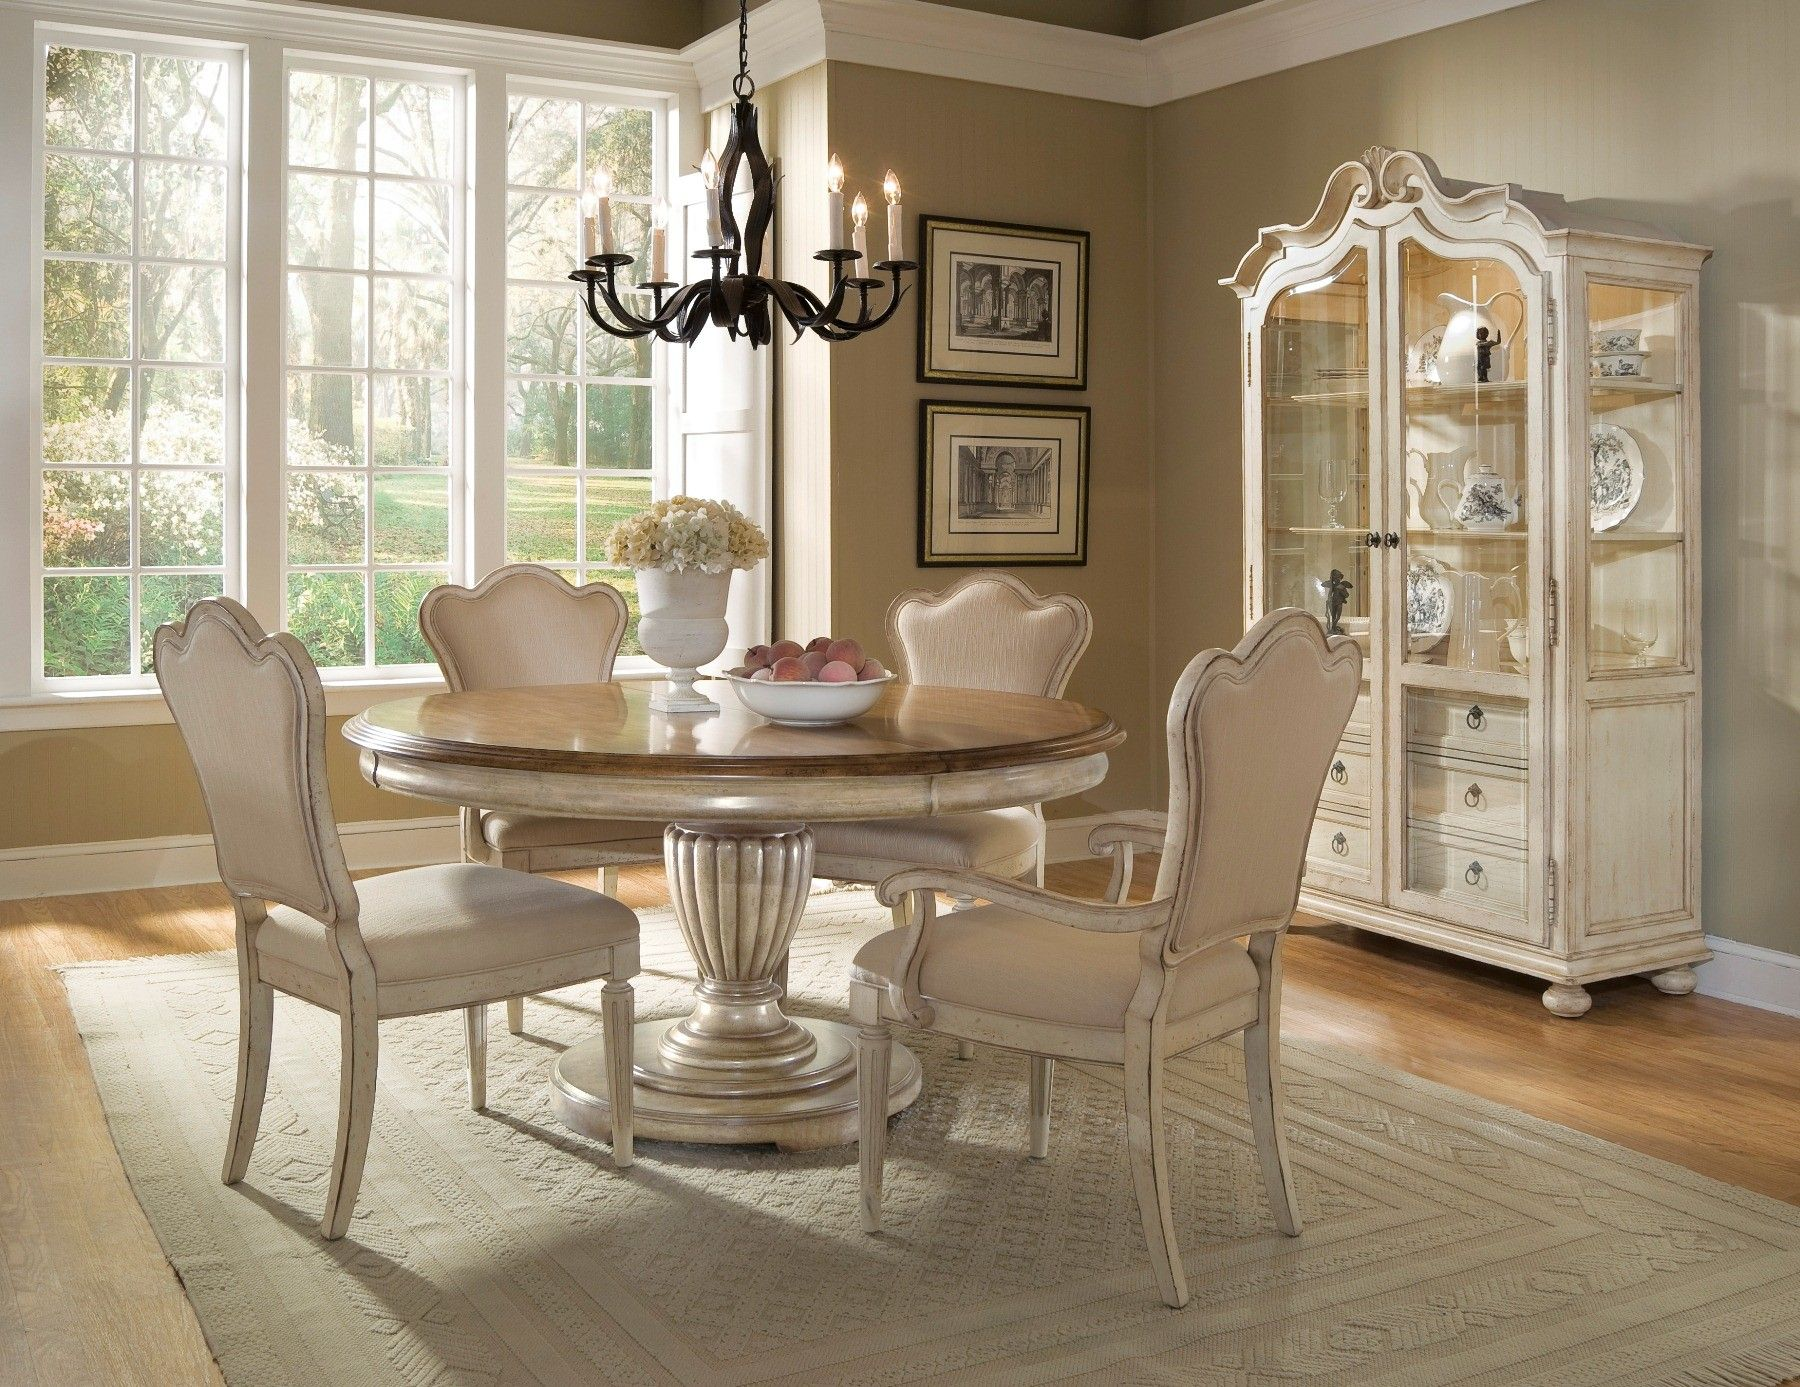 White Dining Room Furniture Dining Room Pinterest Table and